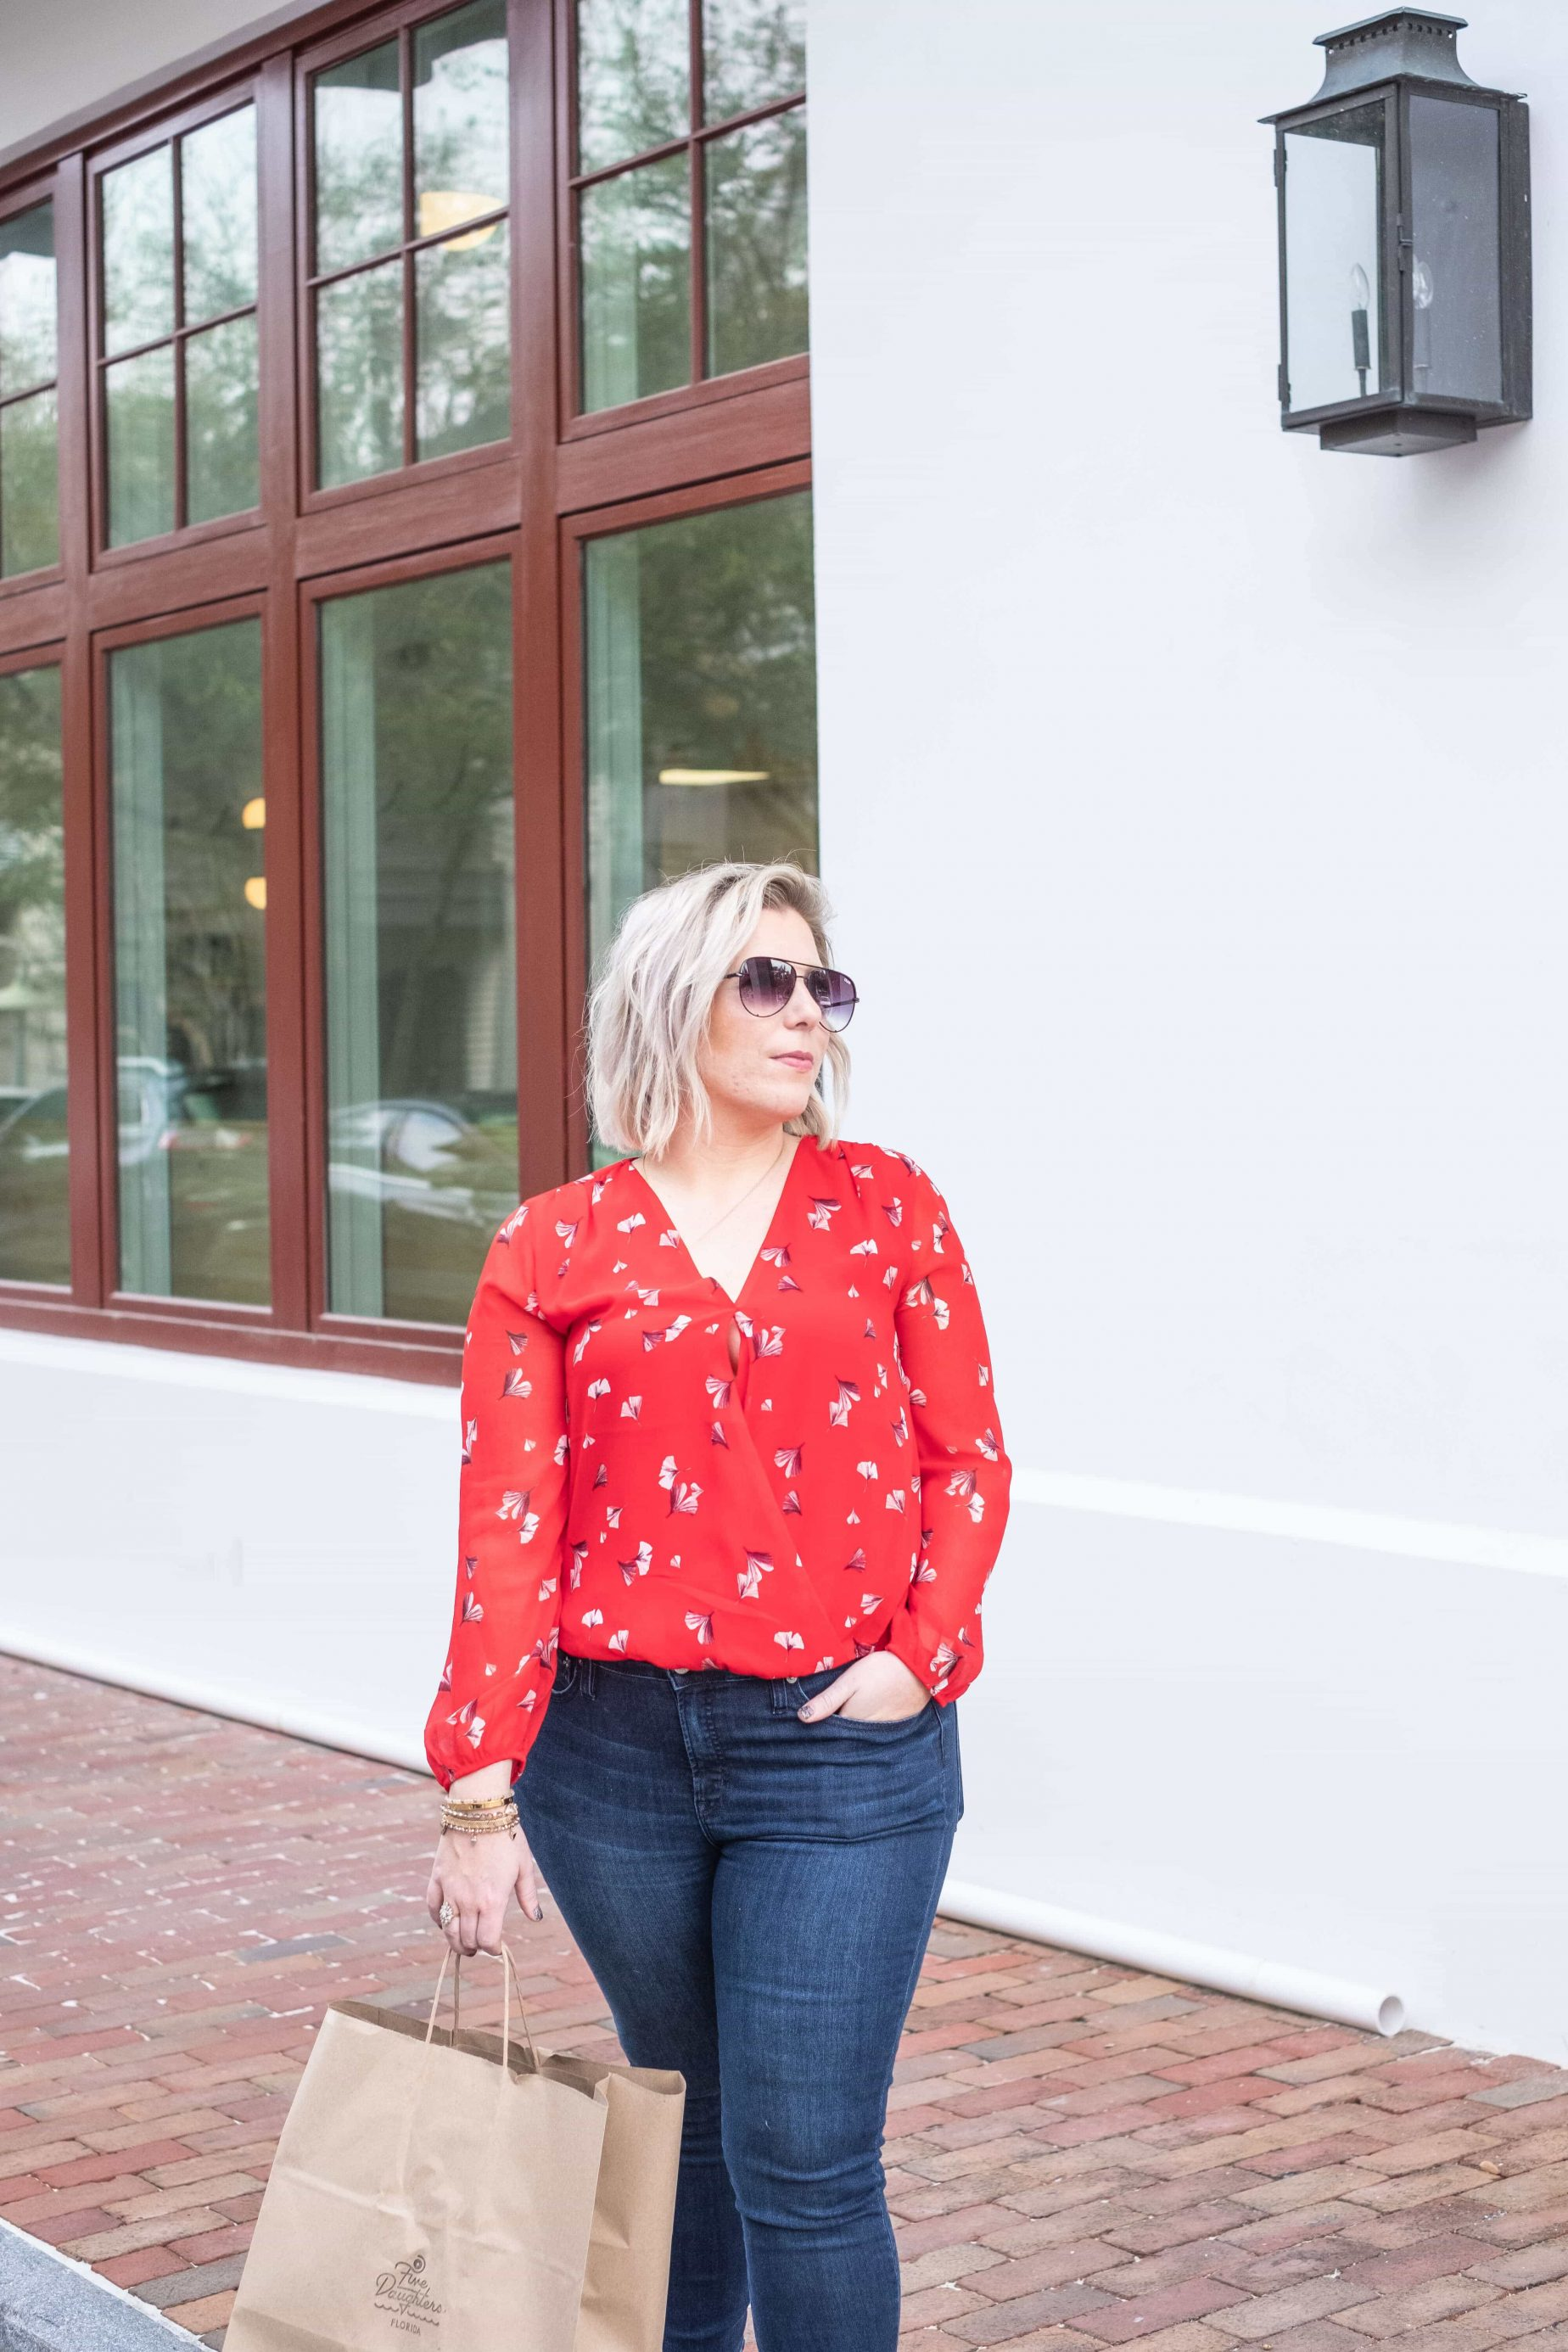 What I Learned From Fasting Coffee #whatsavvysaid #healthyhabits #wellnessblogger #nocoffee #coffeefast #rosemarybeach #fivedaughters #toryburchsandals